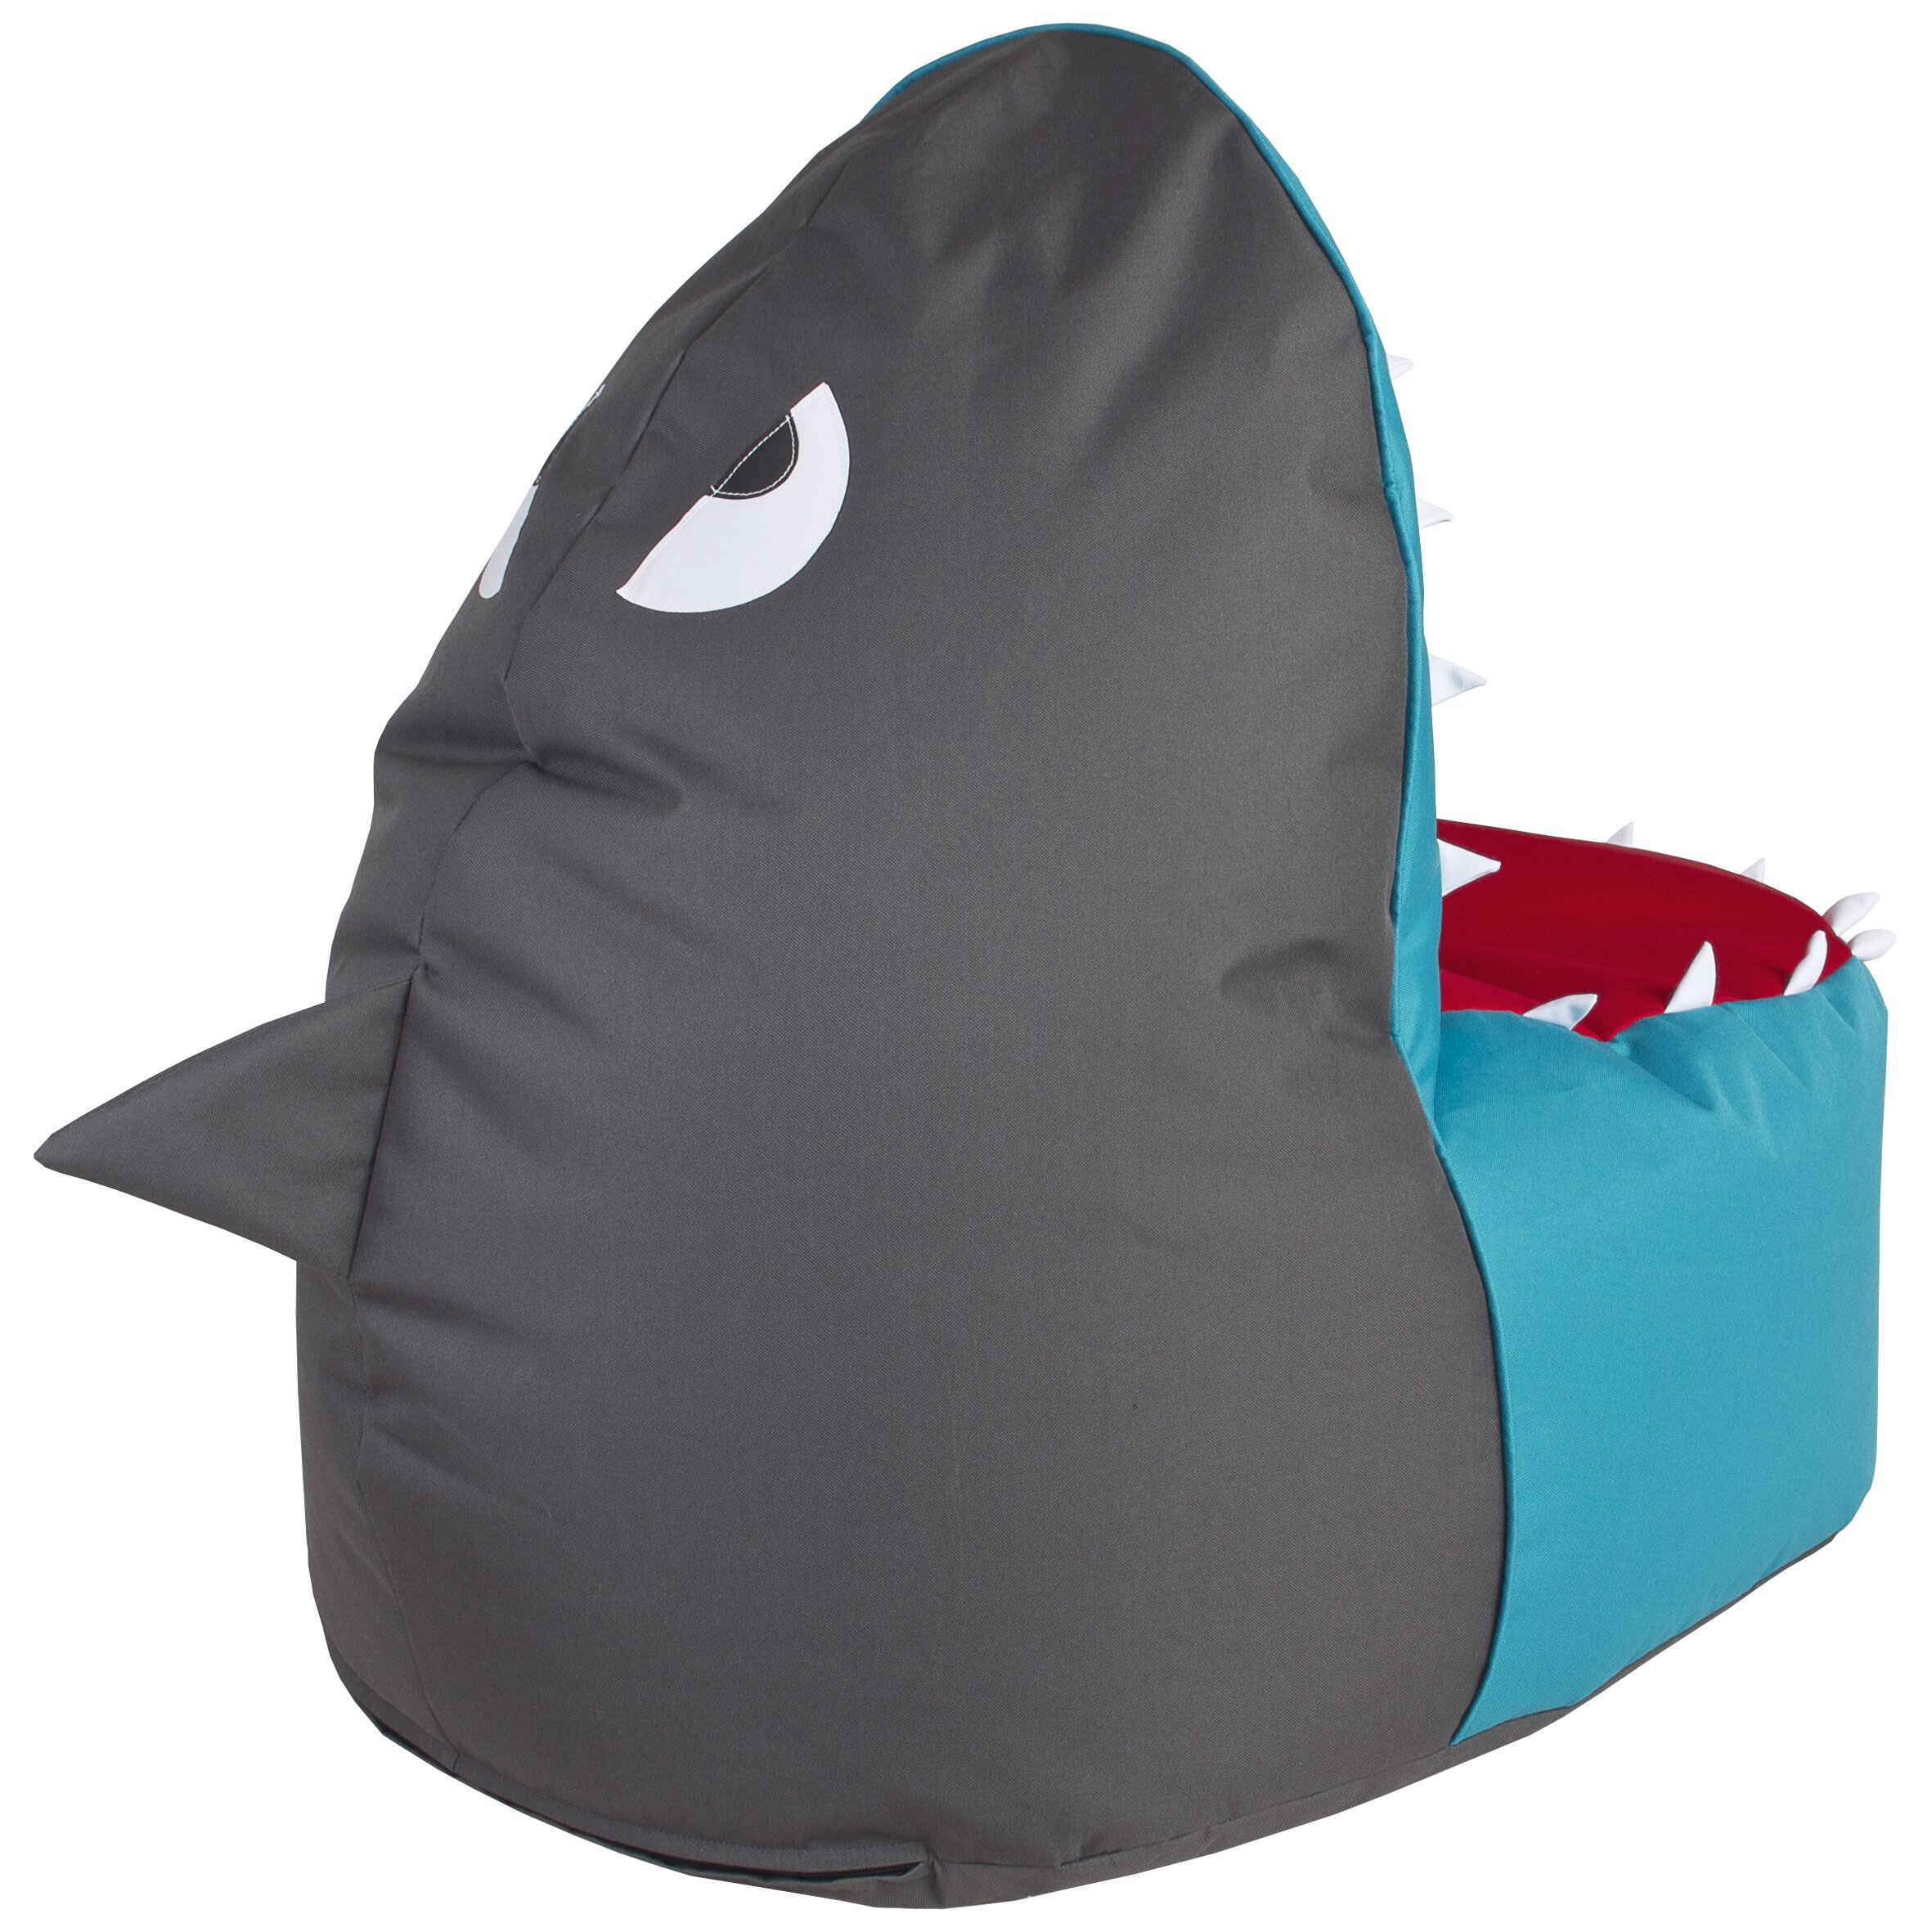 sittingpoint shark brava bean bag chair wayfair. Black Bedroom Furniture Sets. Home Design Ideas